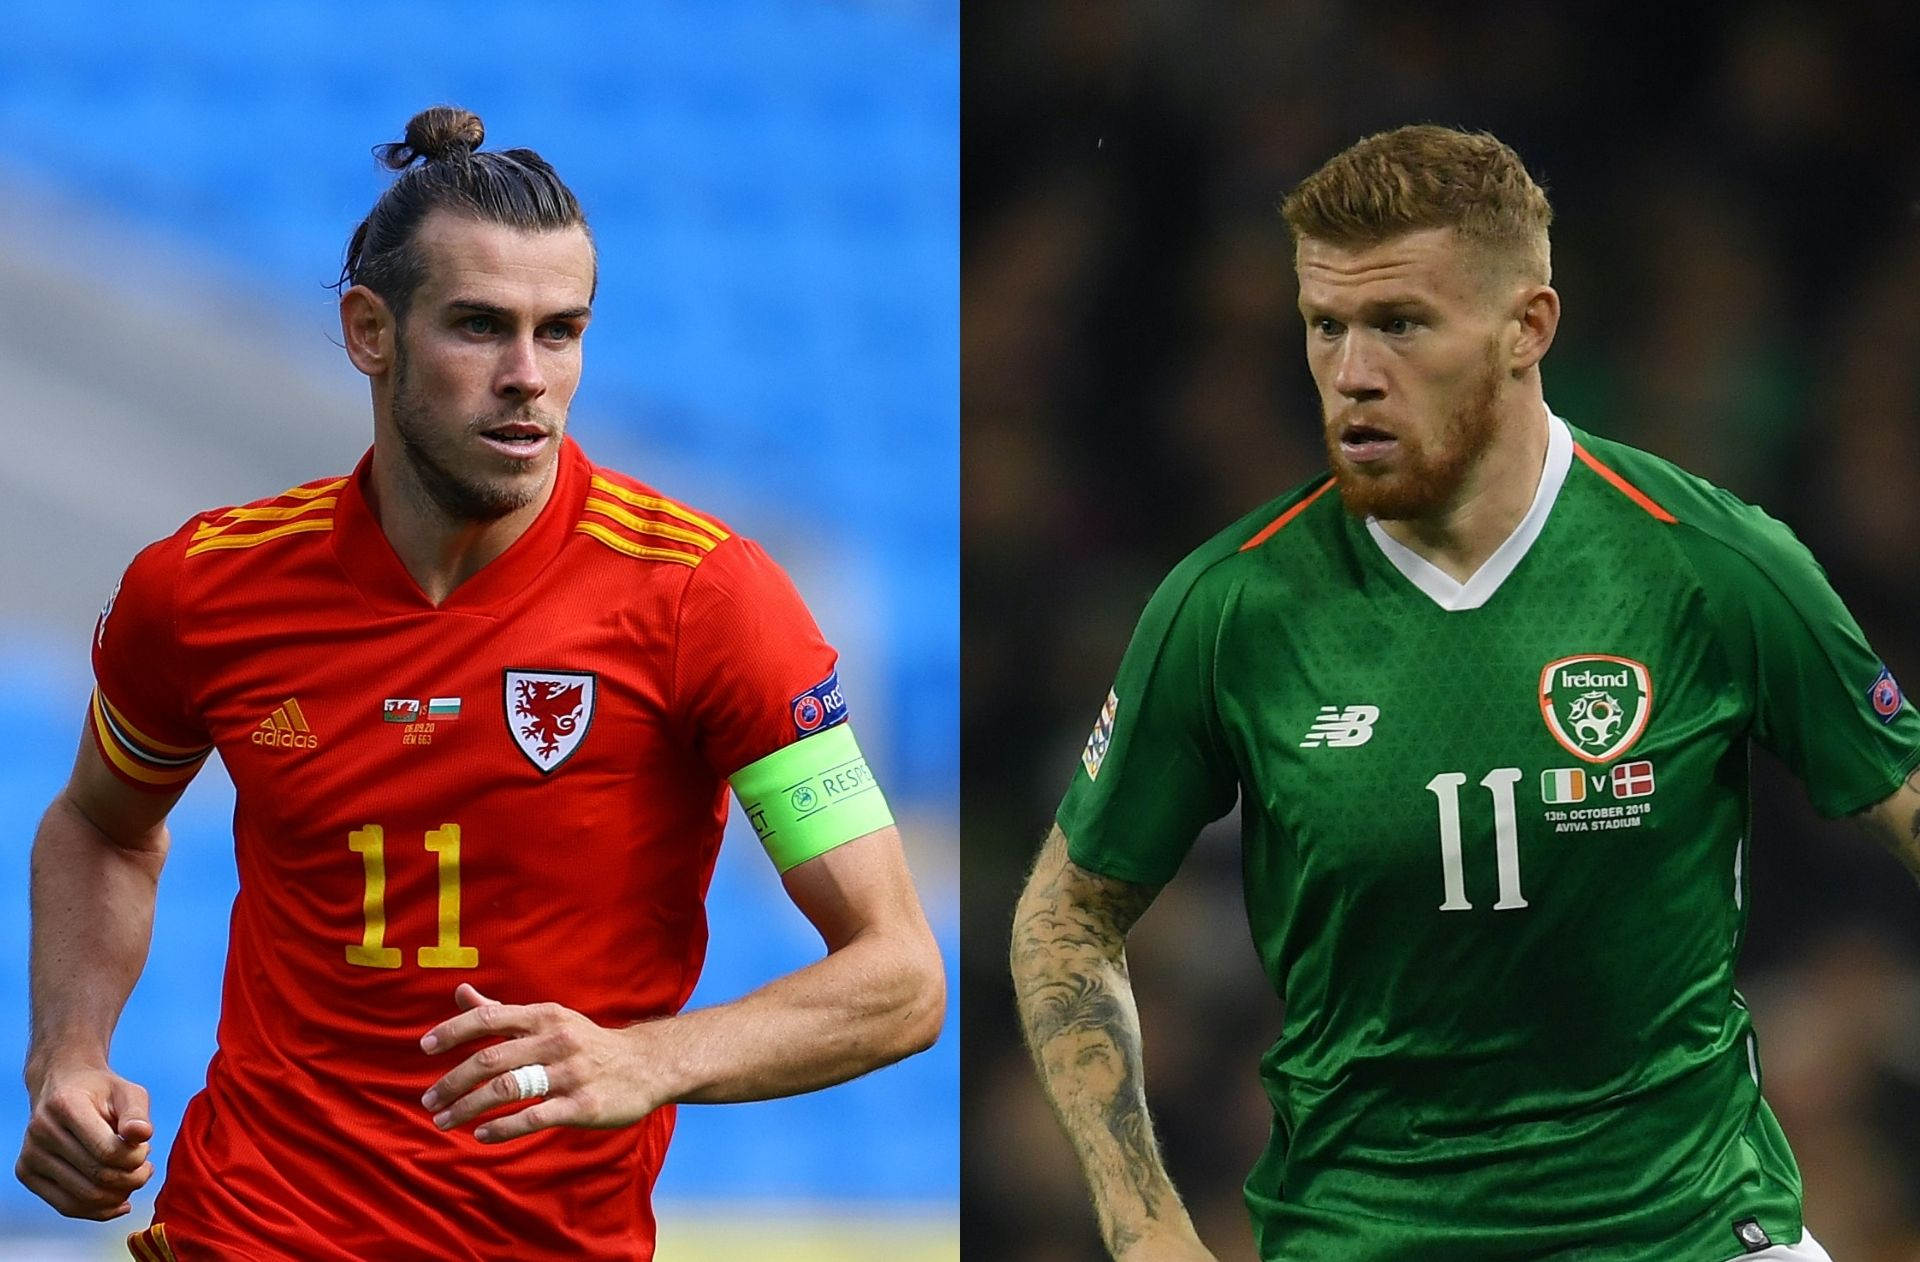 Wales vs Republic of Ireland: Preview, Betting Tips, Stats & Prediction